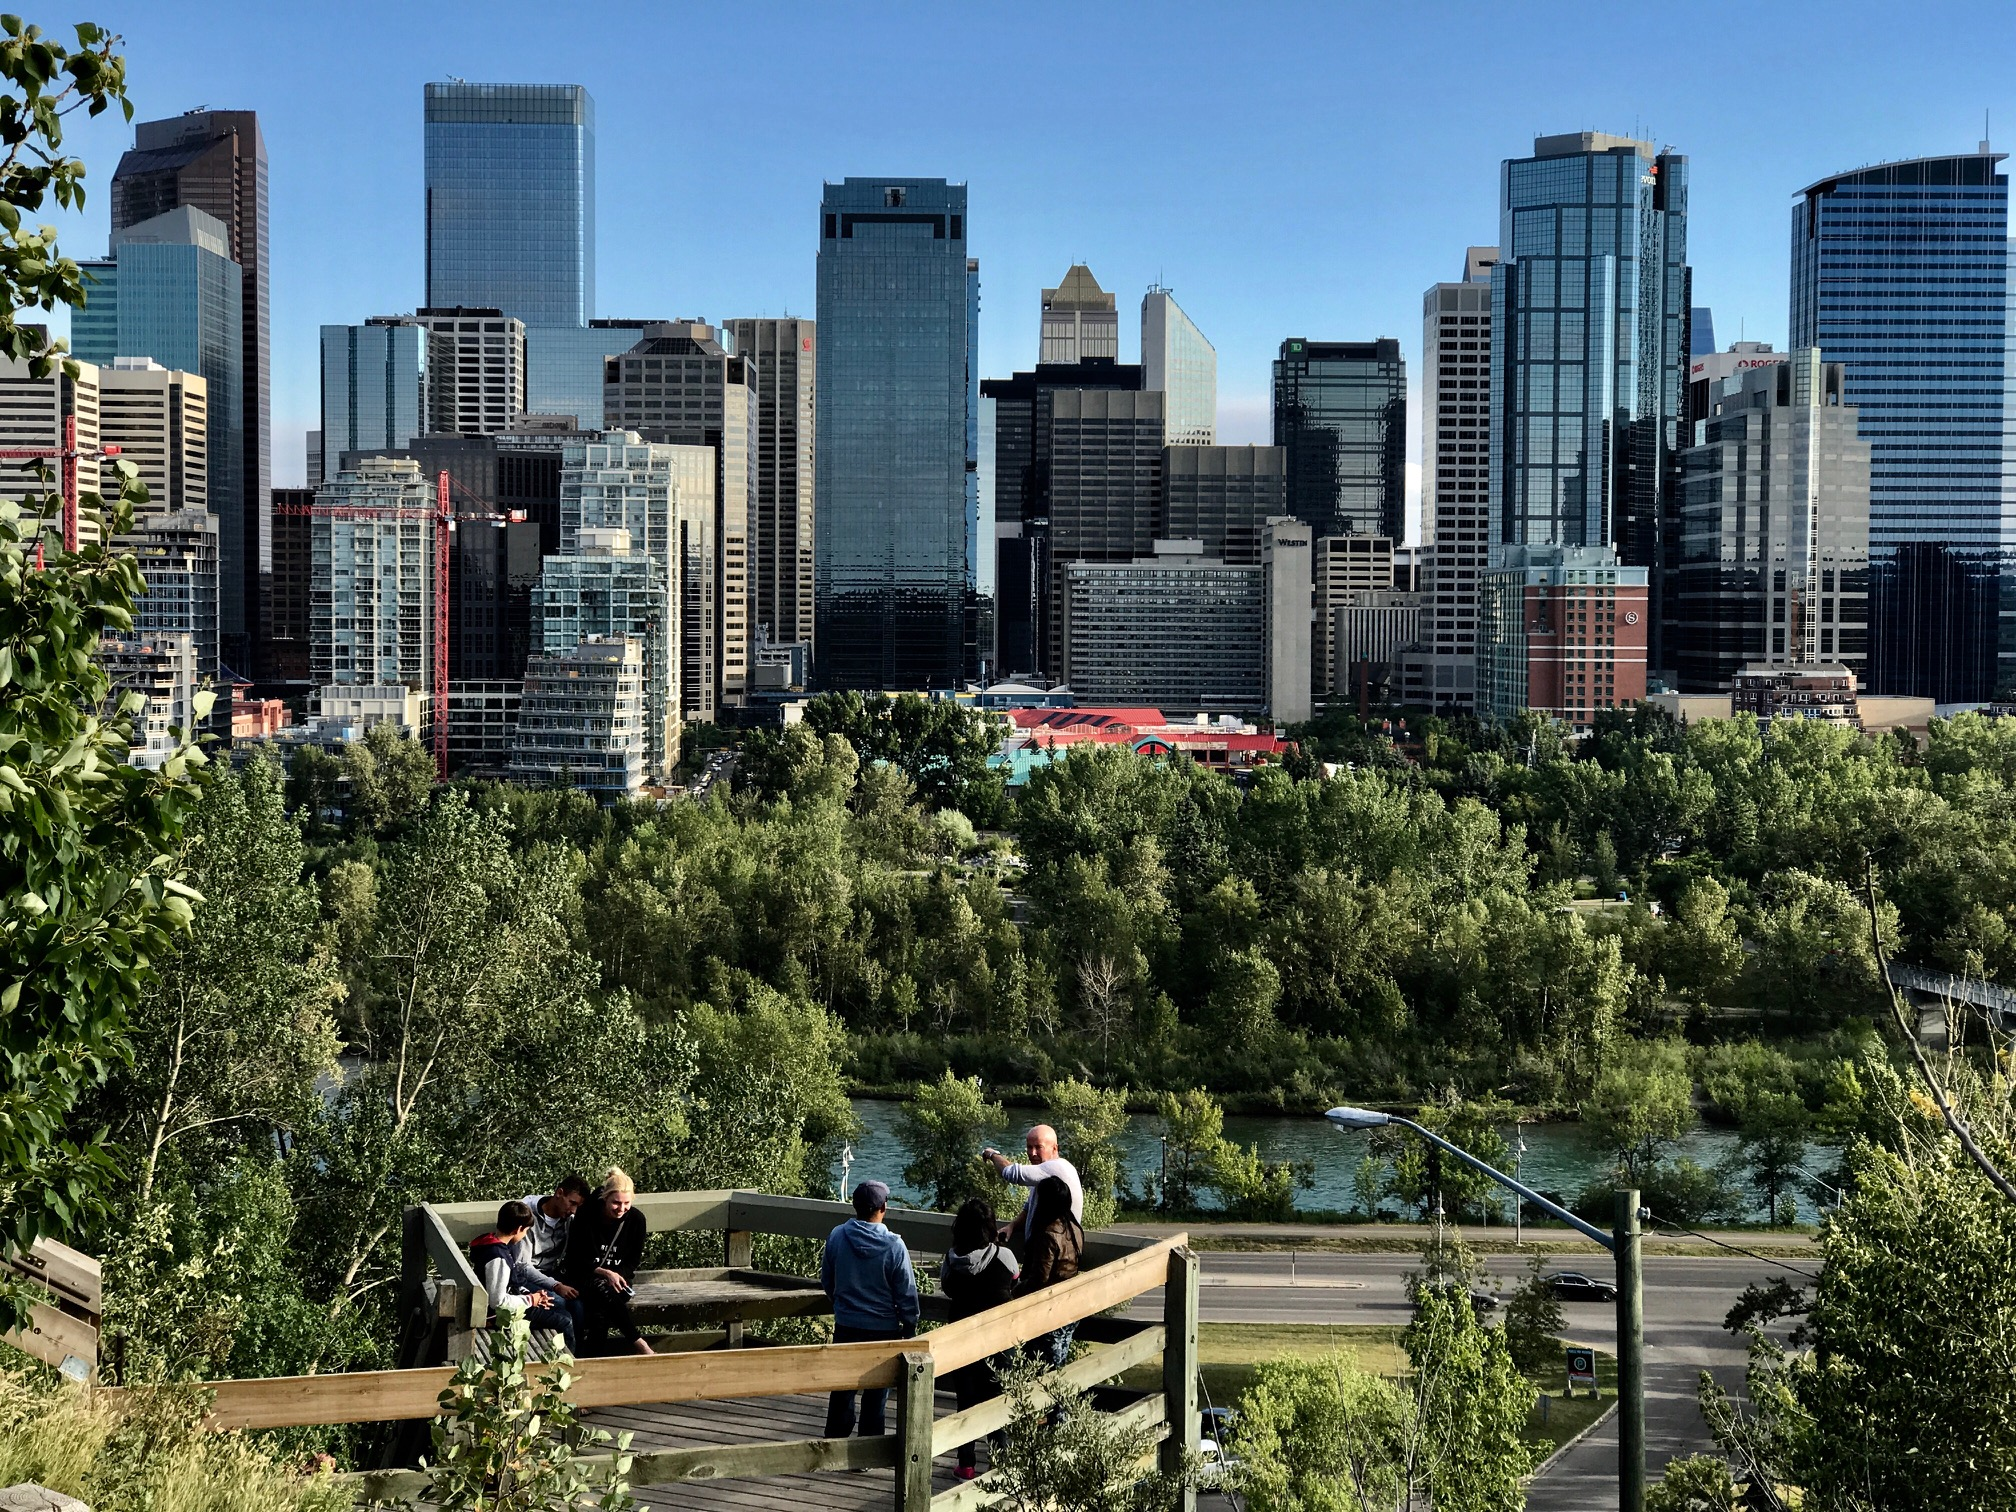 Downtown Calgary with Prince's Island Park in the foreground.